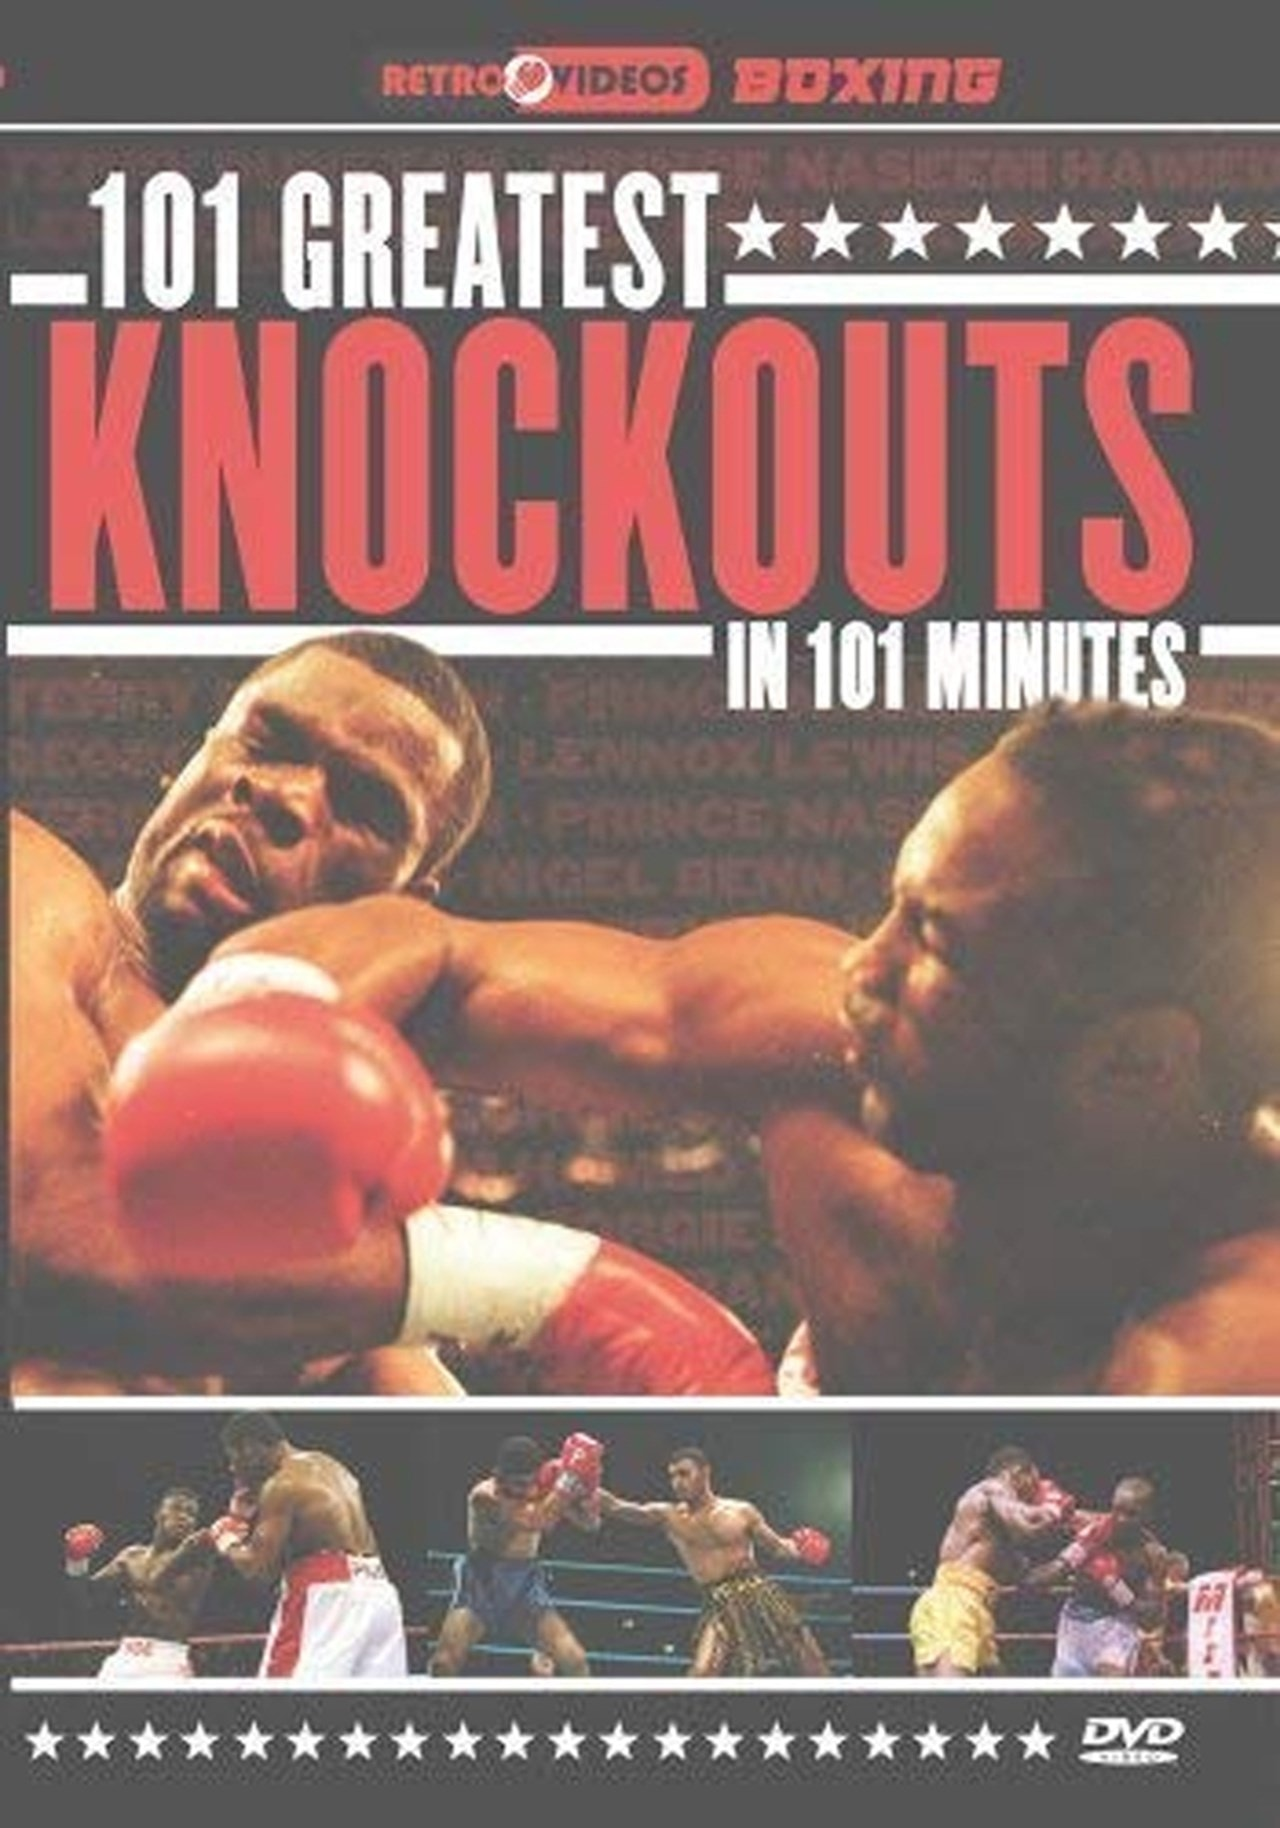 101 Great Knockouts - 1